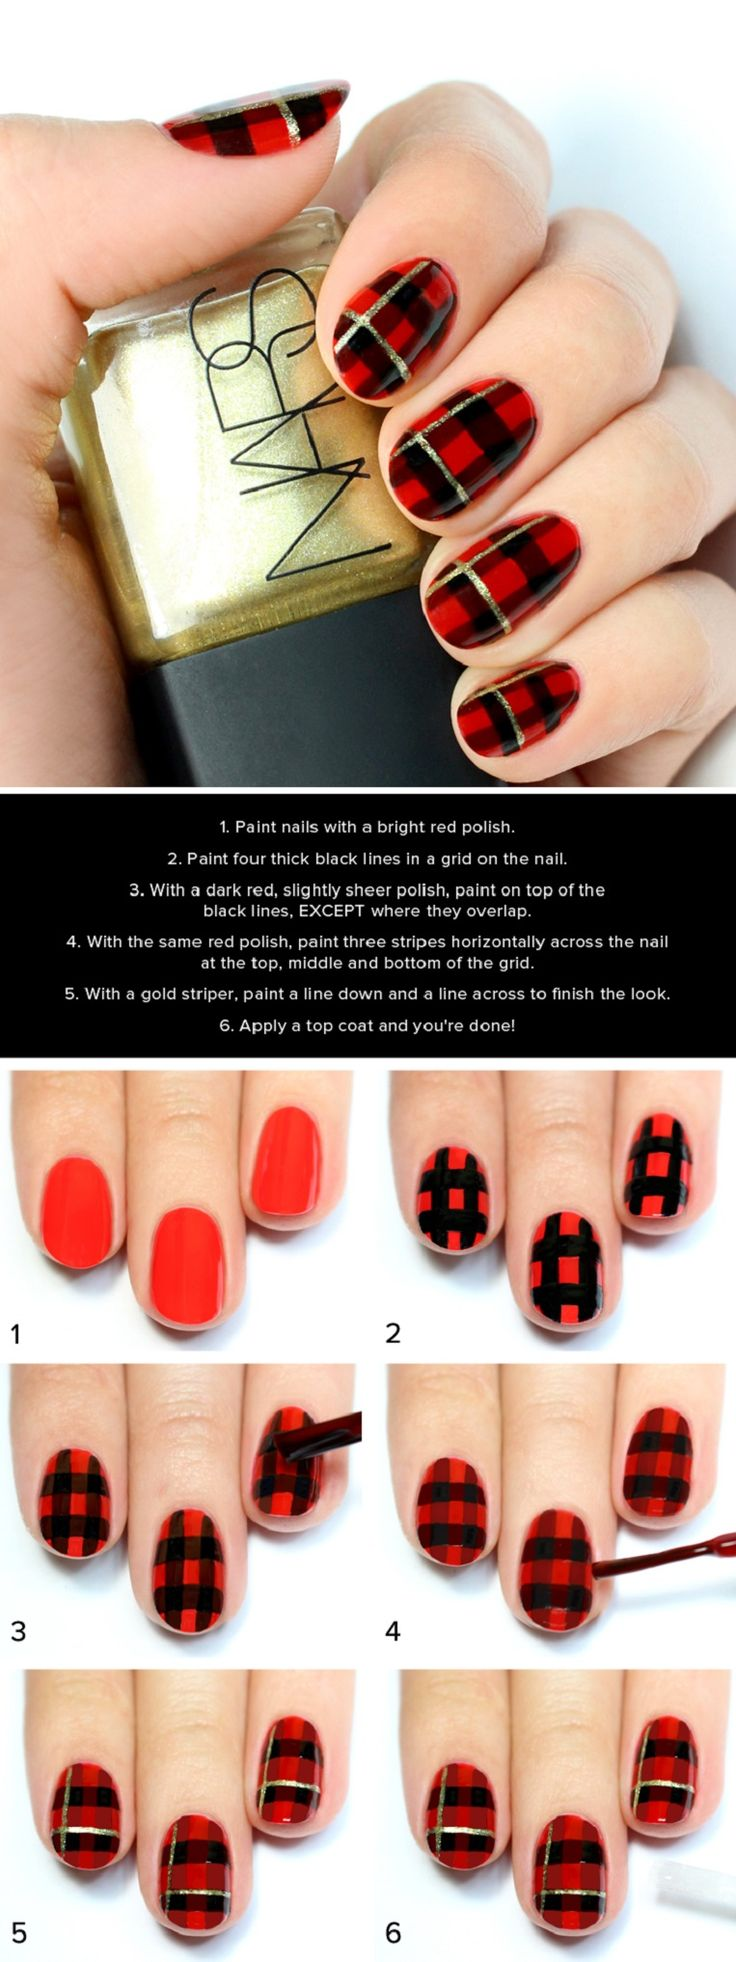 Black and Red Plaid Print Nail Tutorial - 15 Christmas-Inspired DIY Nail Art Tutorials | GleamItUp